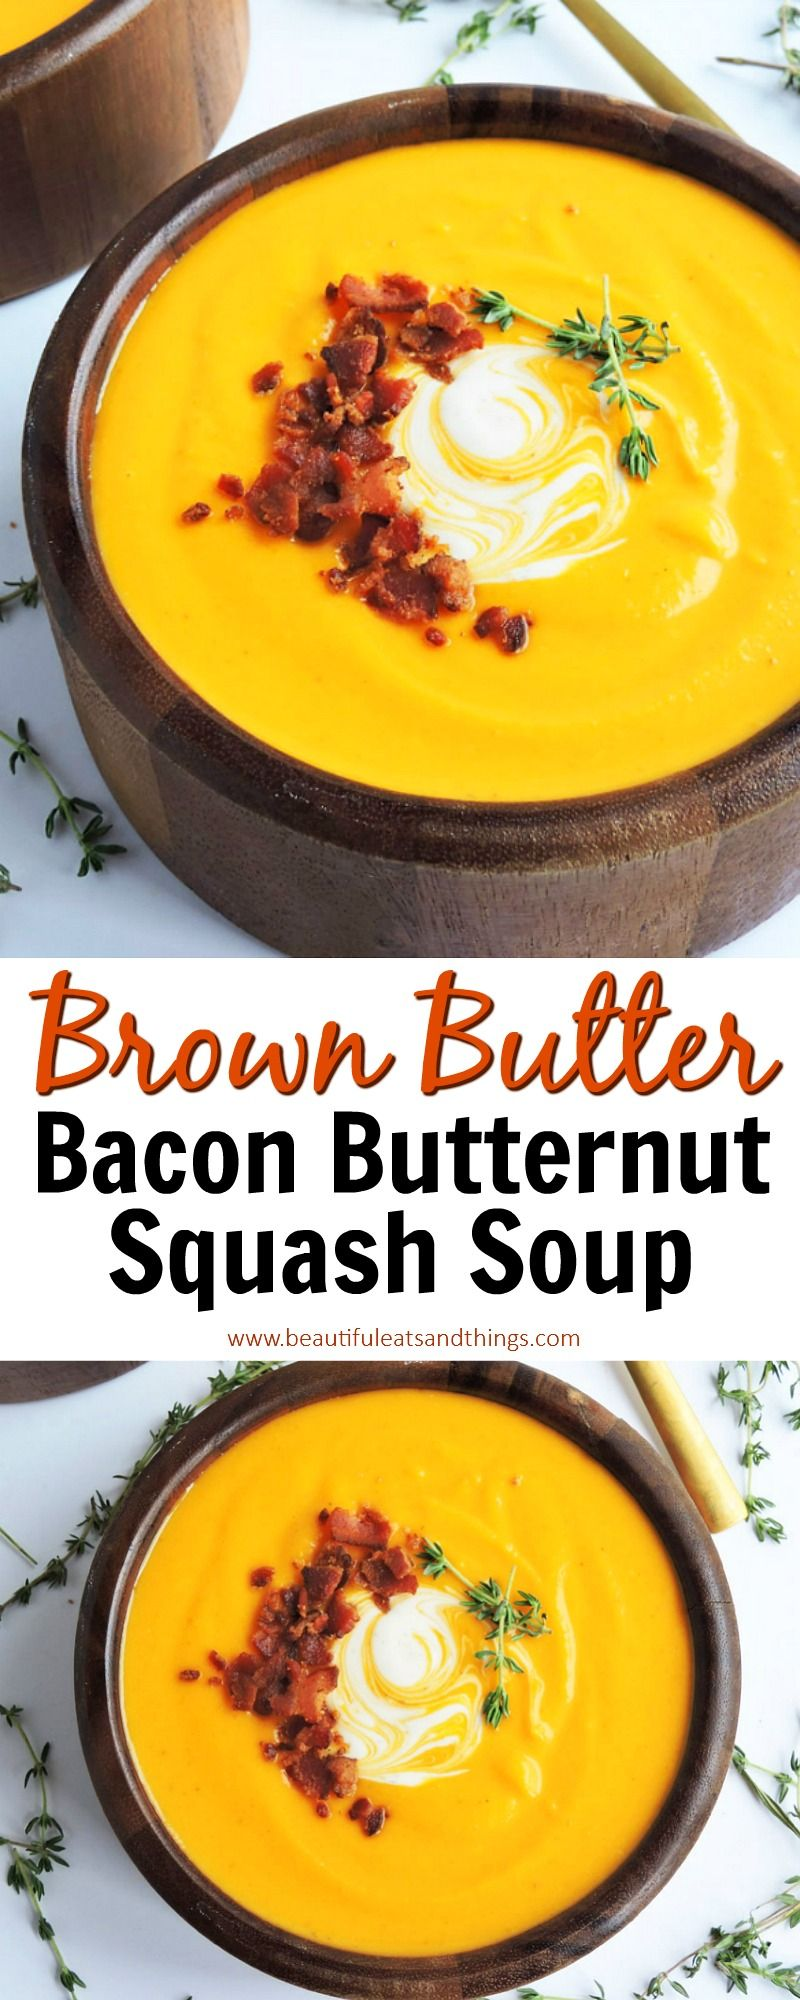 Brown Butter Bacon Butternut Squash Soup - Beautiful Eats & Things